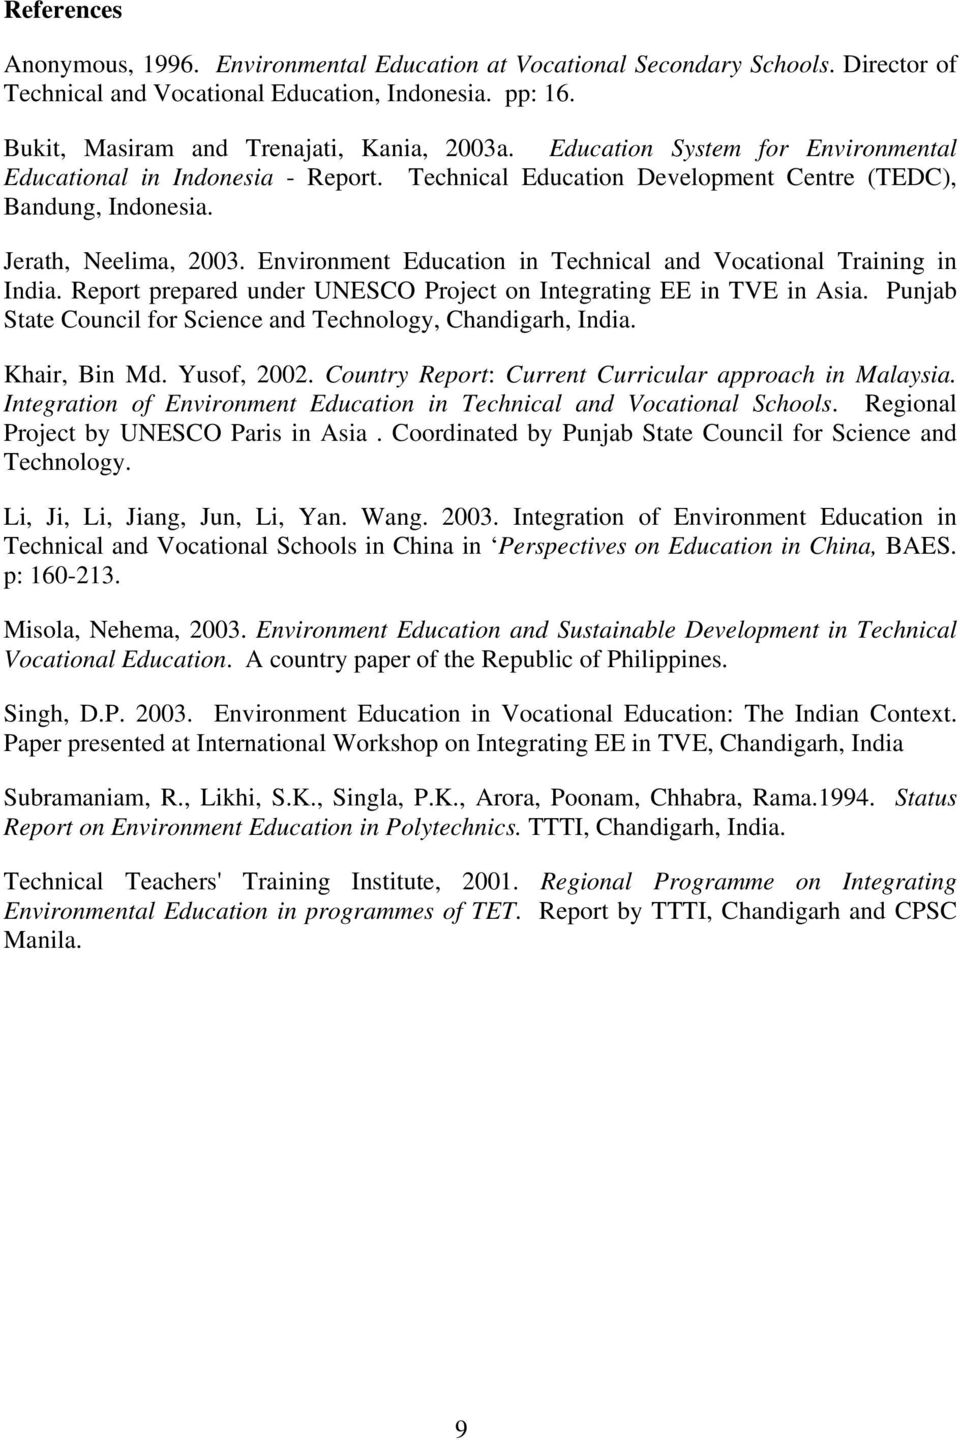 Environment Education in Technical and Vocational Training in India. Report prepared under UNESCO Project on Integrating EE in TVE in Asia.